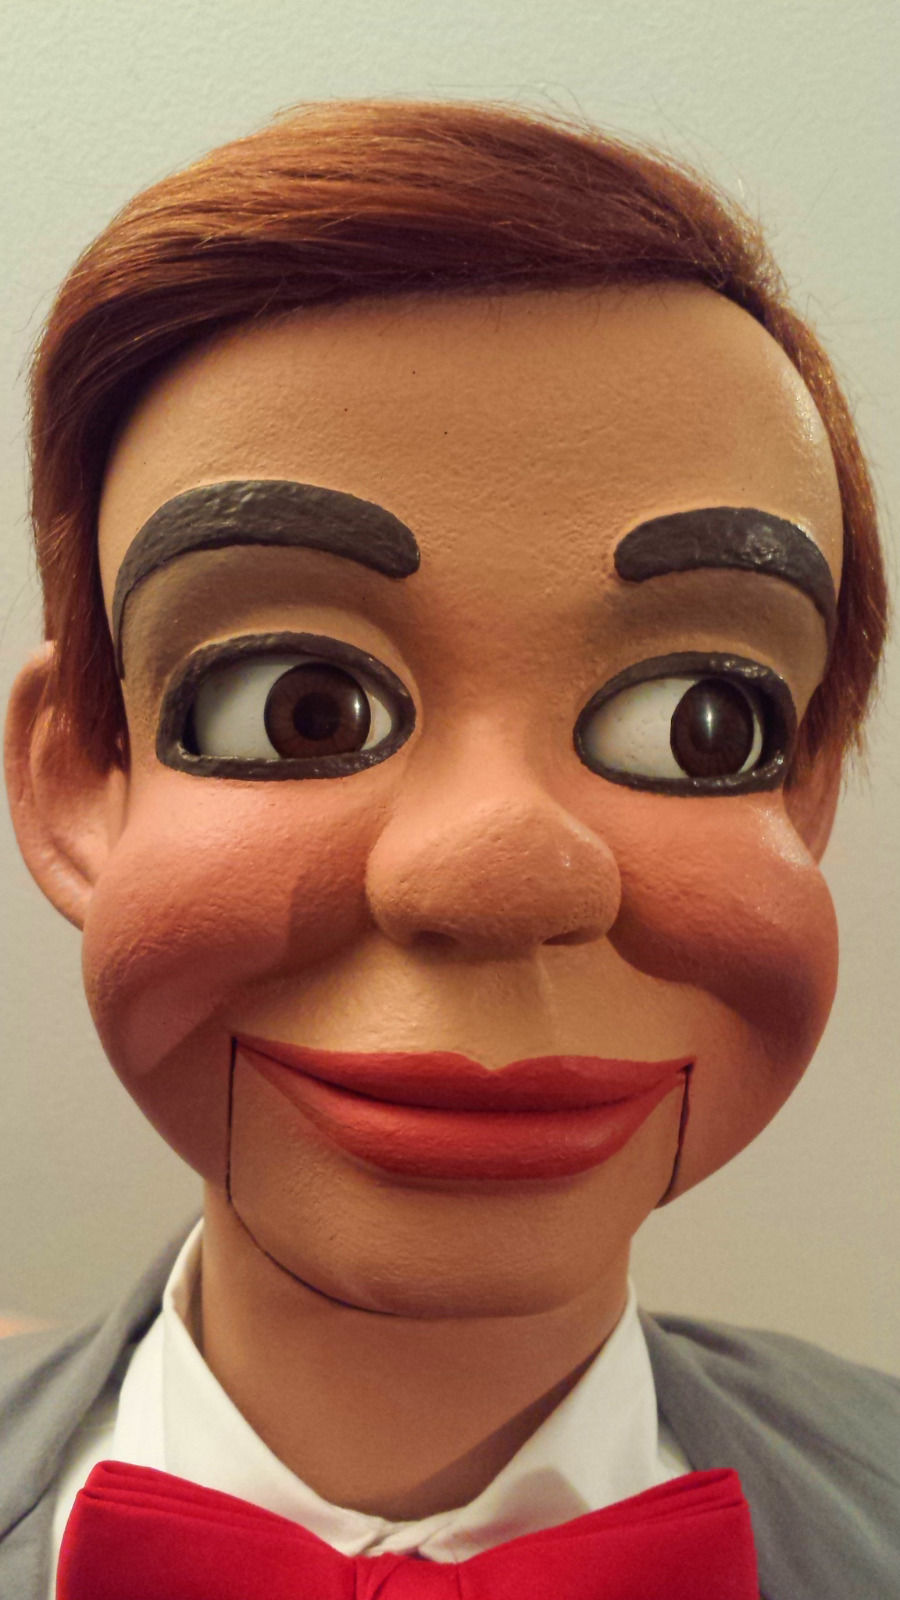 jerry mahoney ventriloquist dummy doll